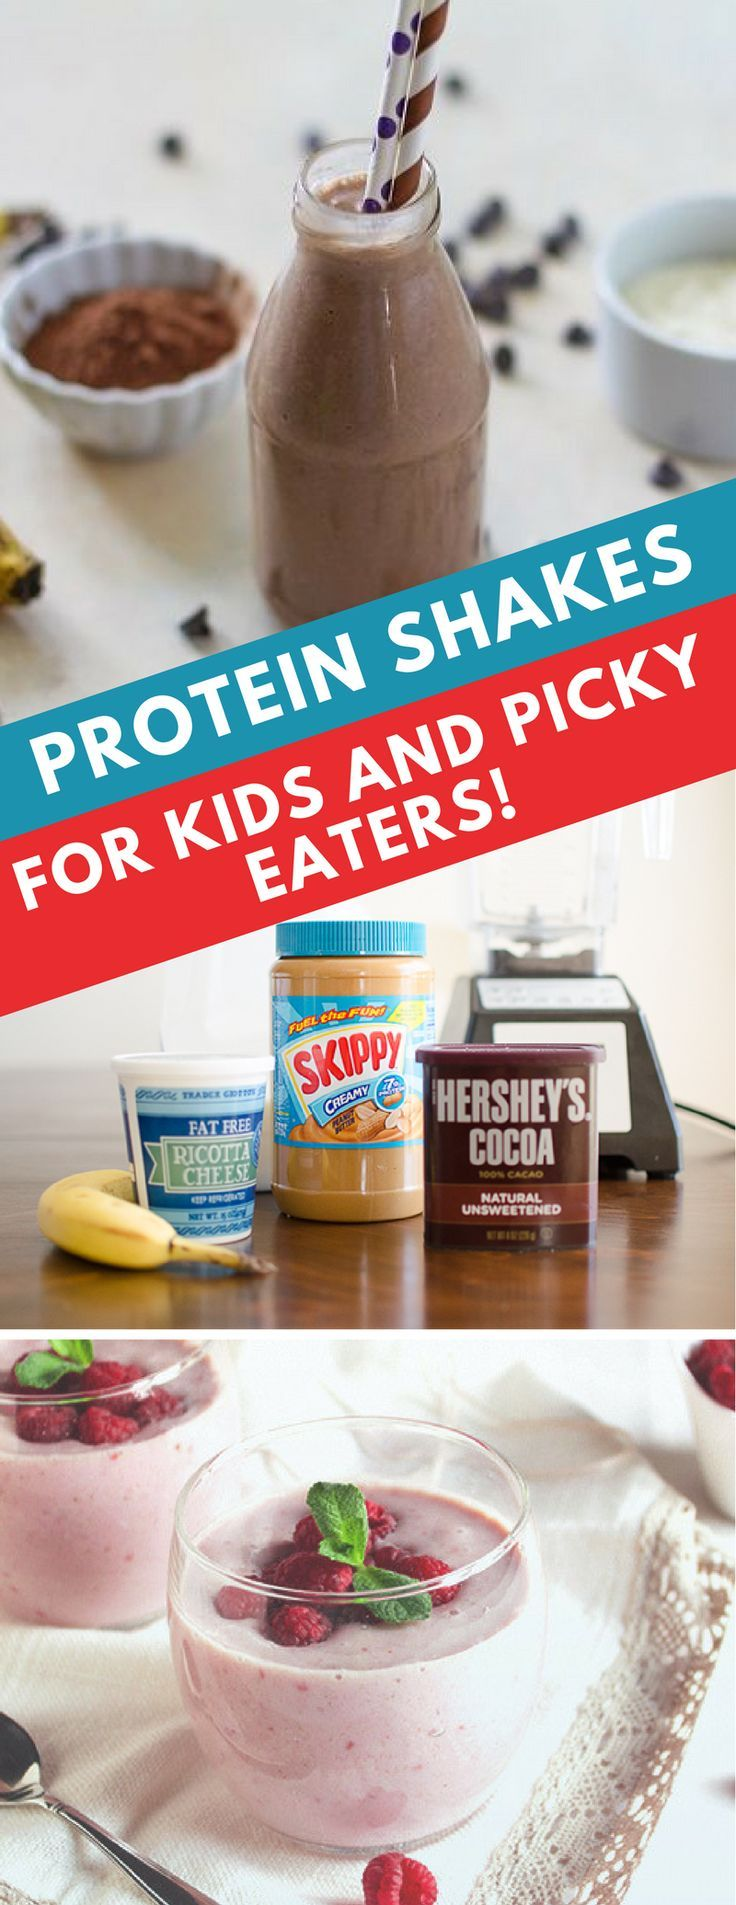 10 Amazing Protein Shake Recipes Your Kids Will Go Crazy For!